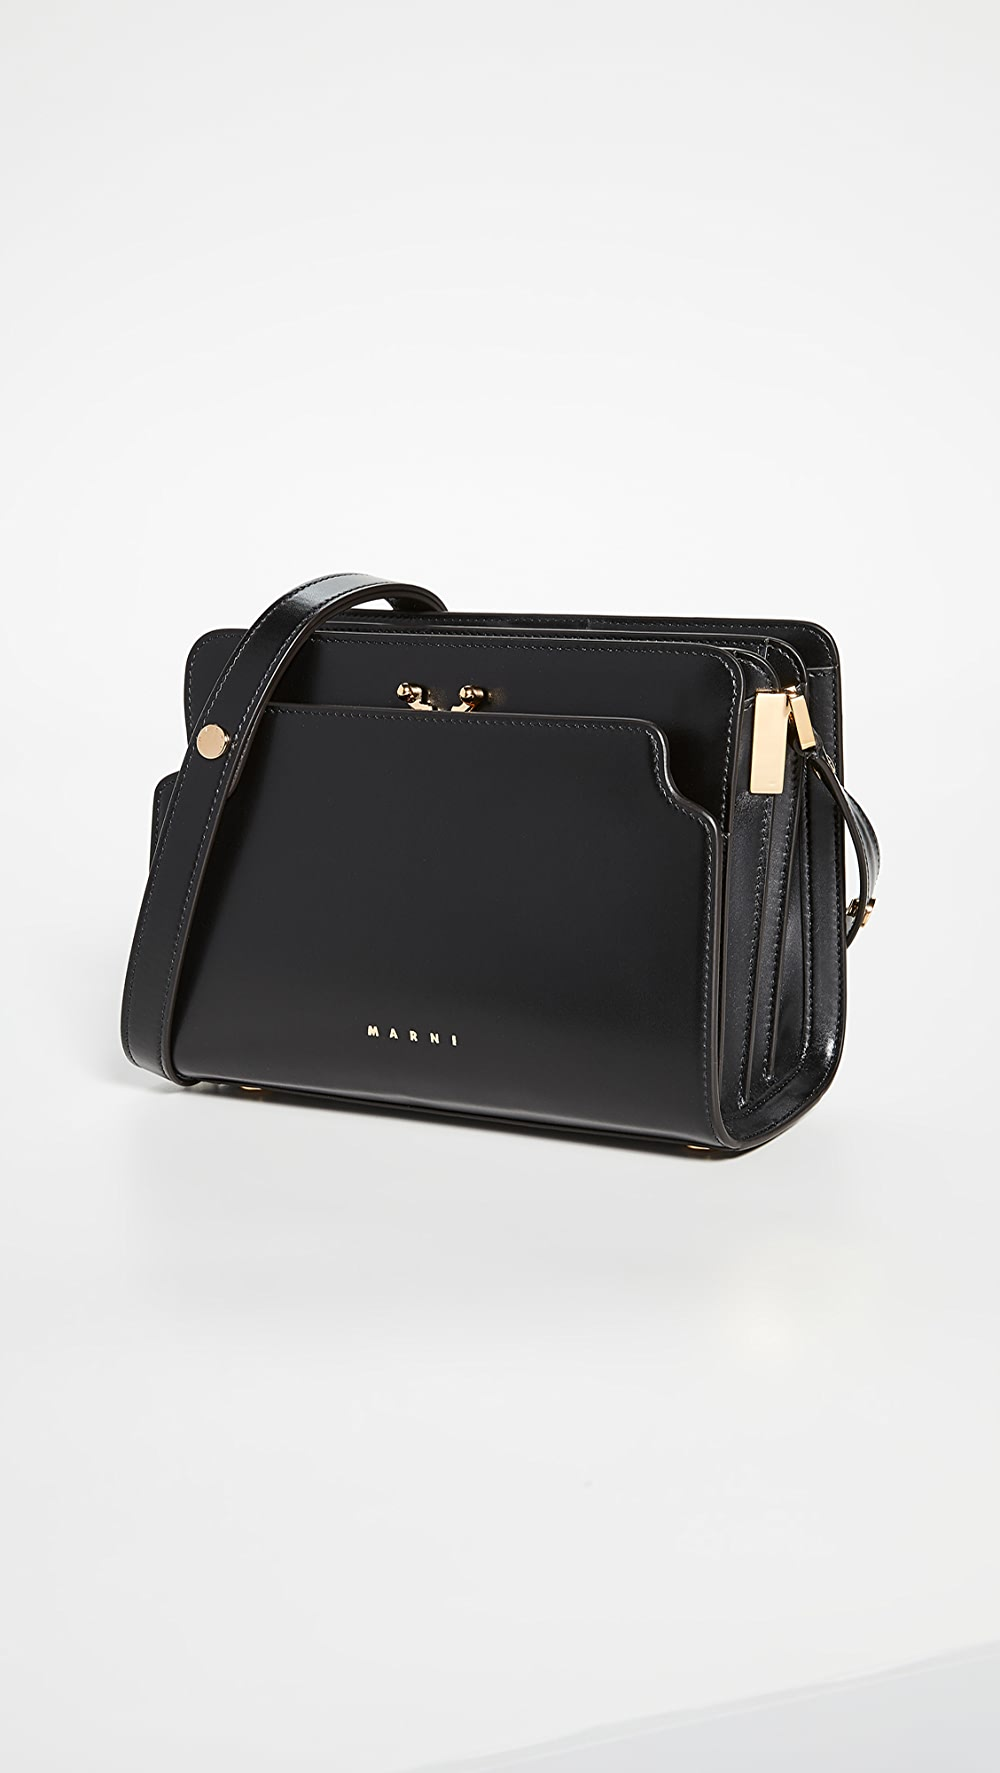 Competent Marni - Trunk Reverse Bag Grade Products According To Quality